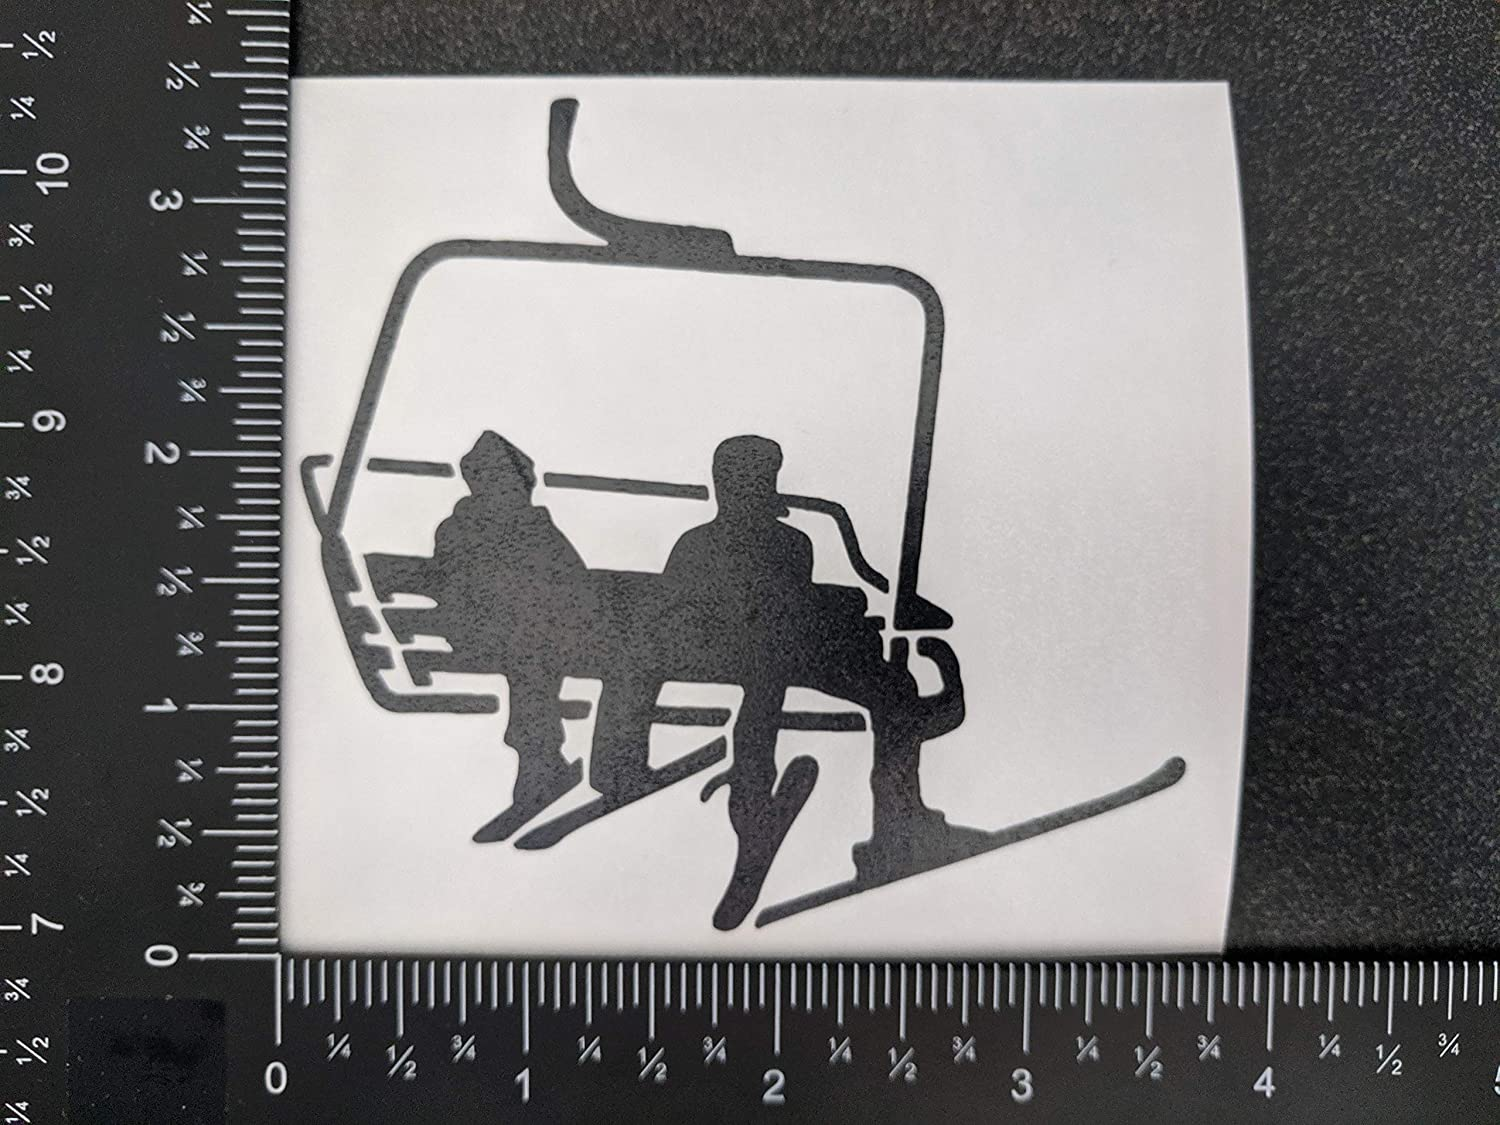 CCDecals Skiing Decal 4 Pack: Id Rather Be Skiing Chairlift Goggles Eat Sleep Ski Skiing Black